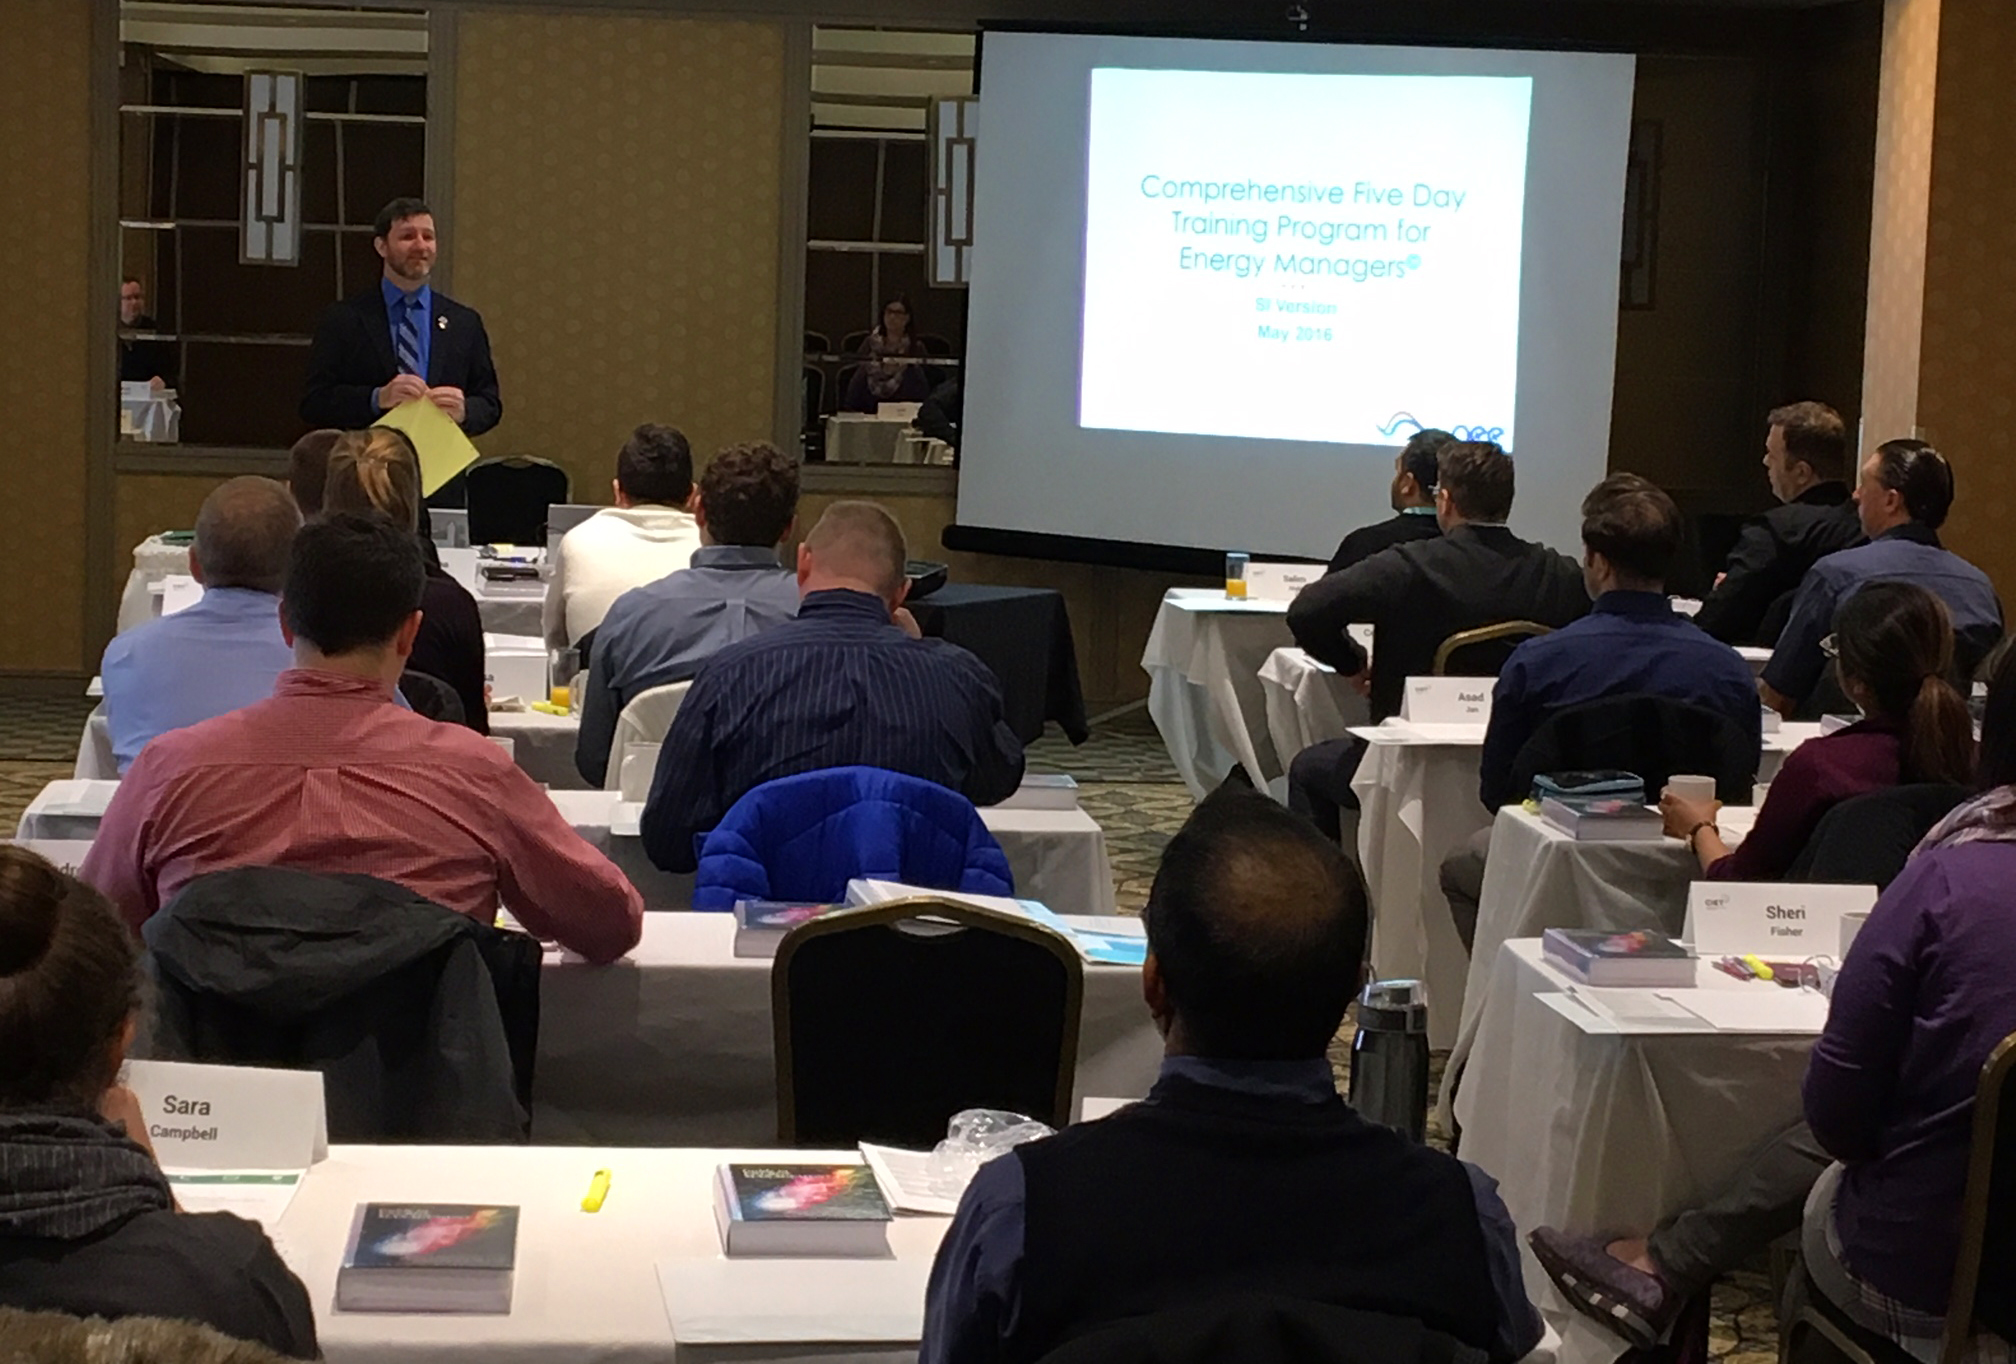 CIET's Winter/Spring Public Course Schedule Kicks off with CEM Training in Toronto